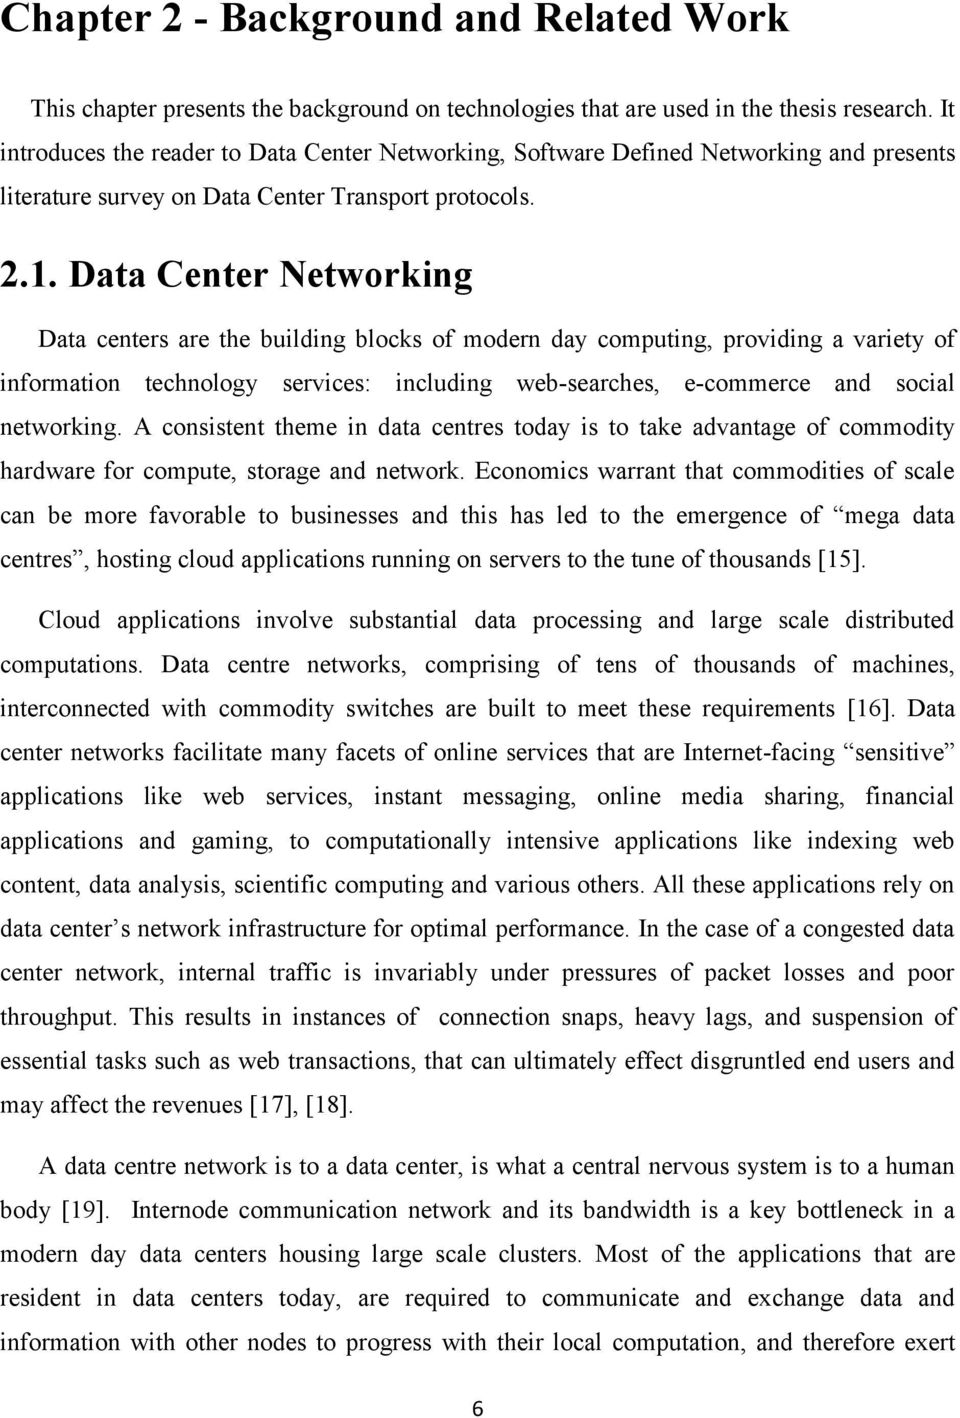 Data Center Networking Data centers are the building blocks of modern day computing, providing a variety of information technology services: including web-searches, e-commerce and social networking.